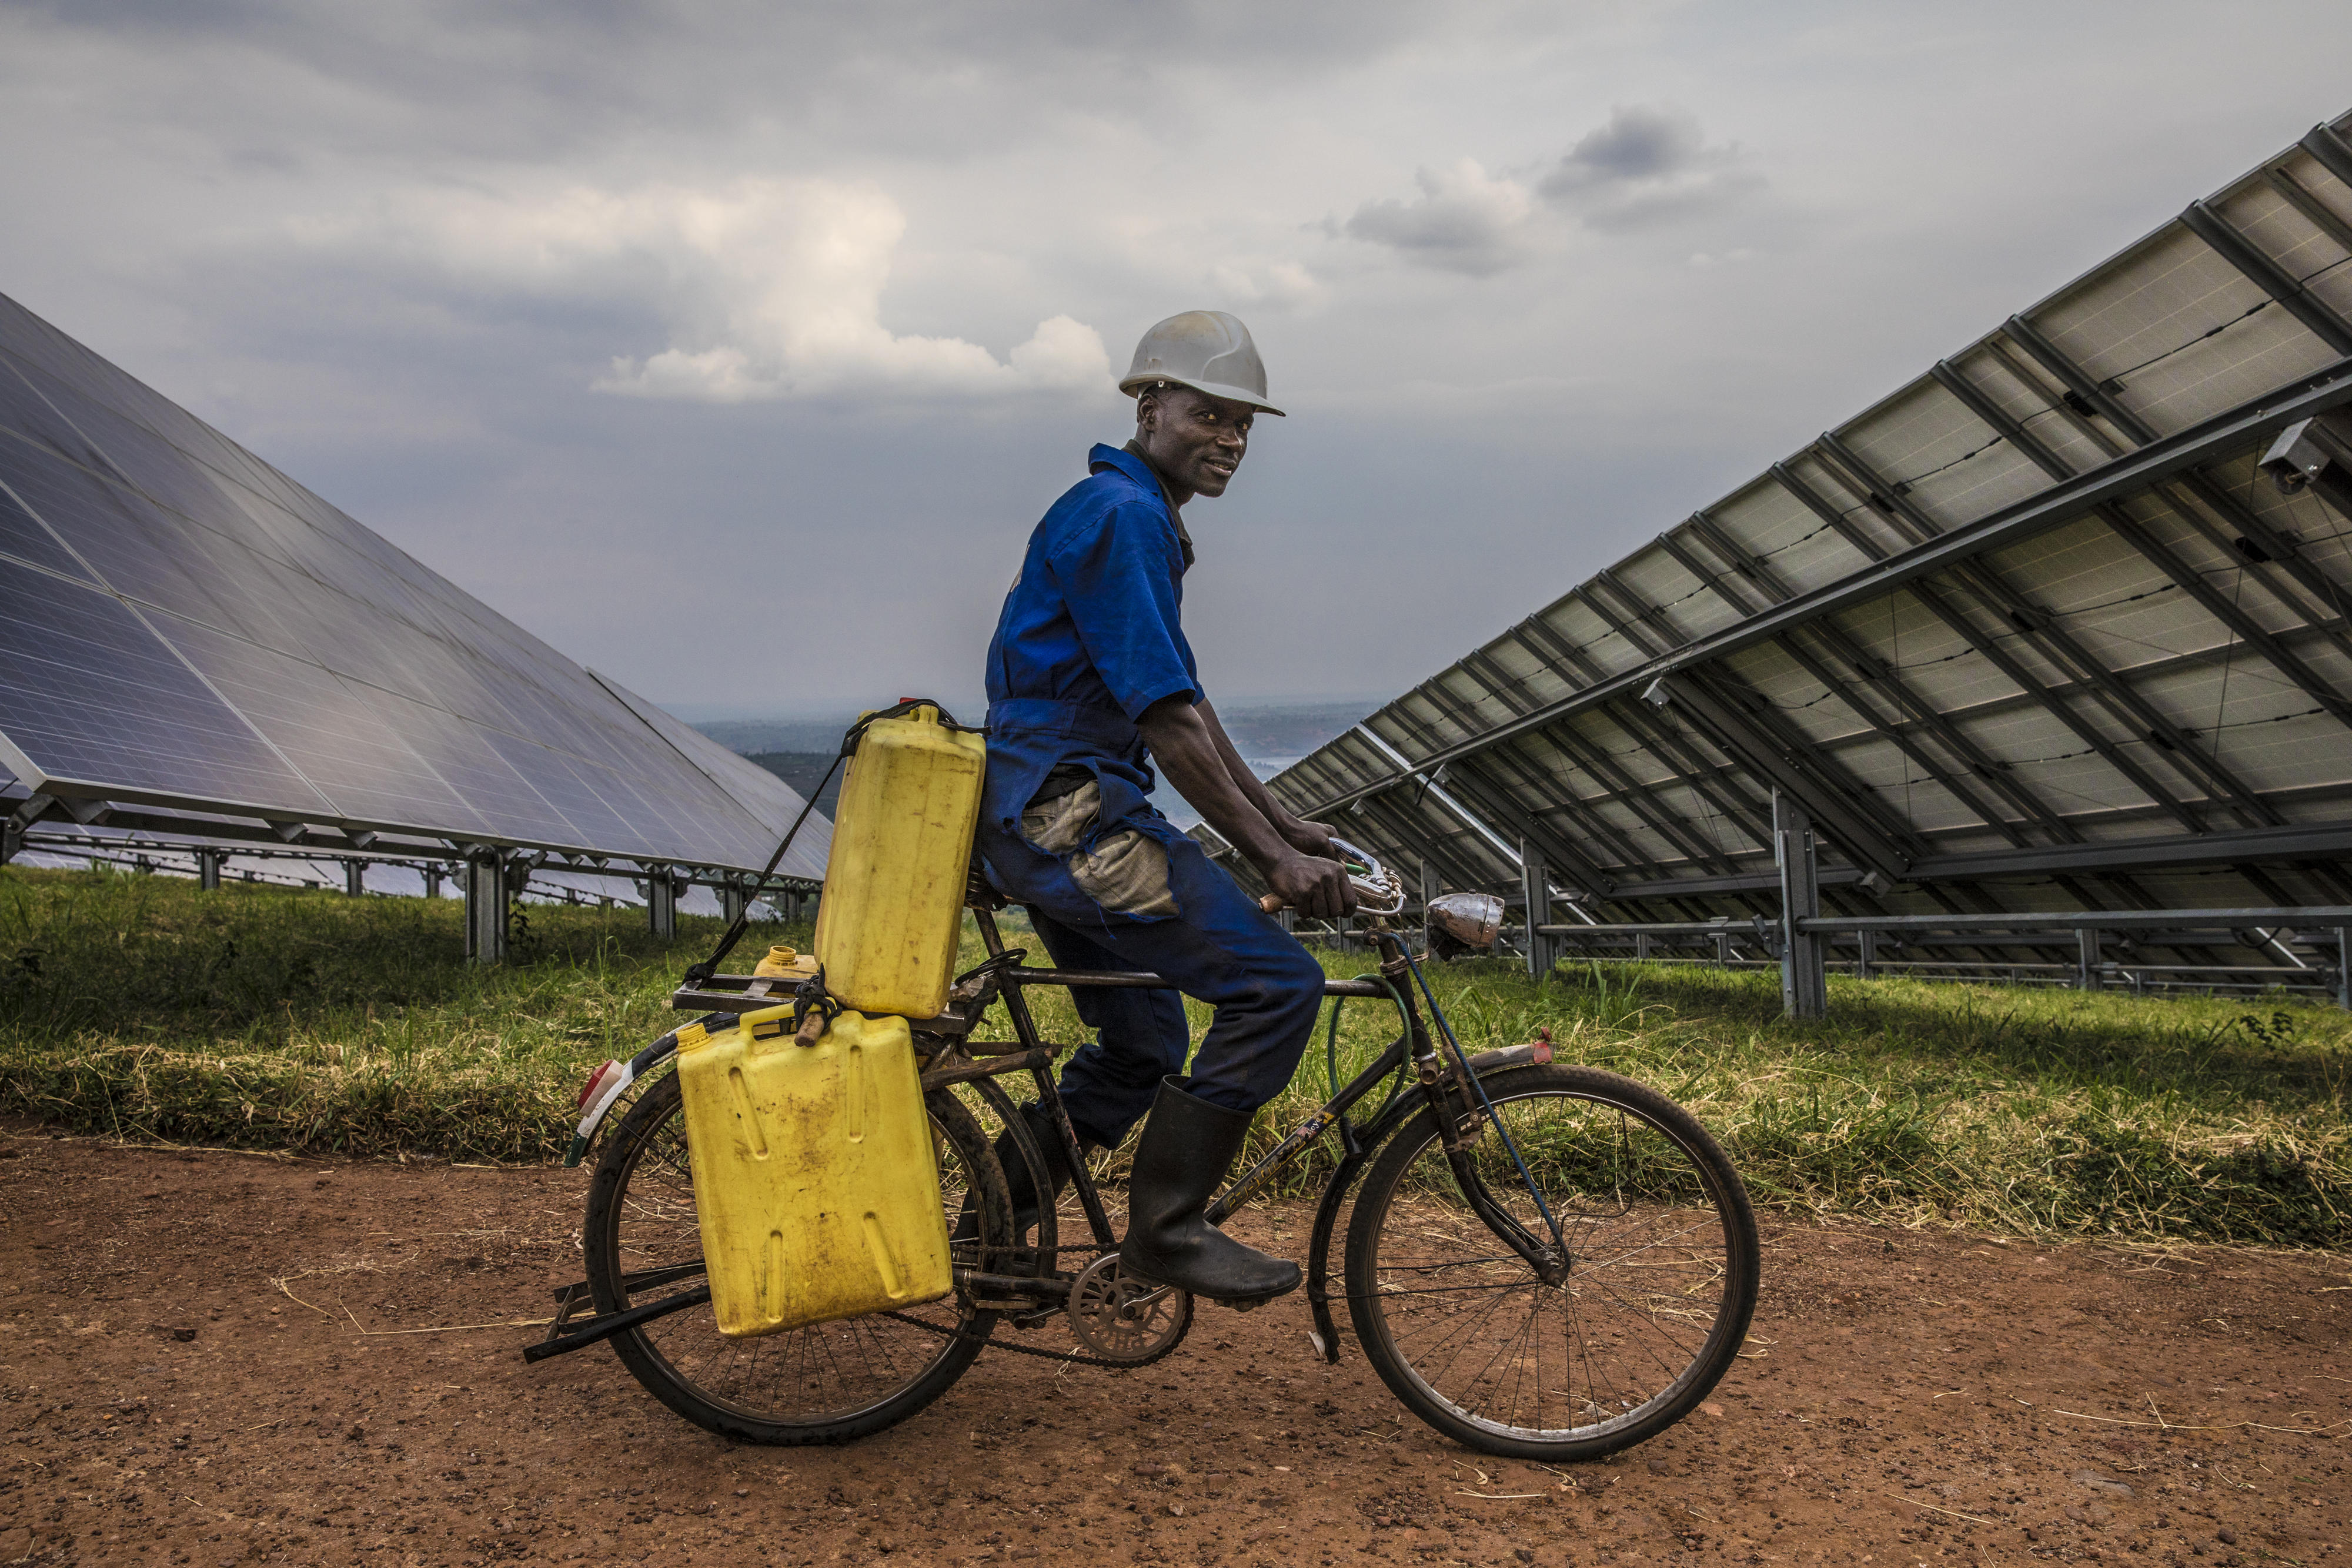 A worker at the Rwamagana Solar Power Station rides through the plant with jugs of water.